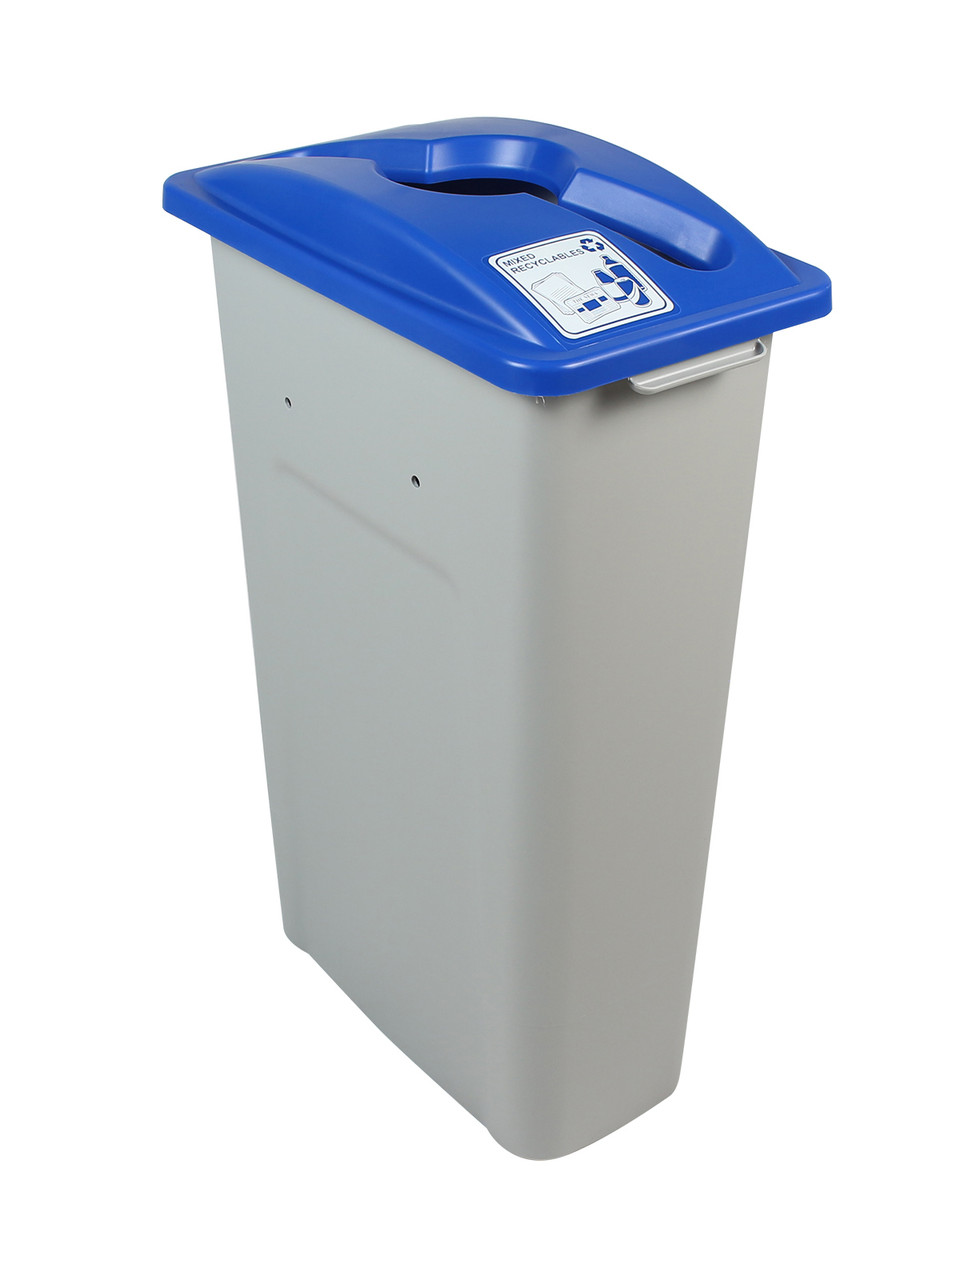 23 Gallon Skinny Simple Sort Recycle Bin (Mixed Recyclables)